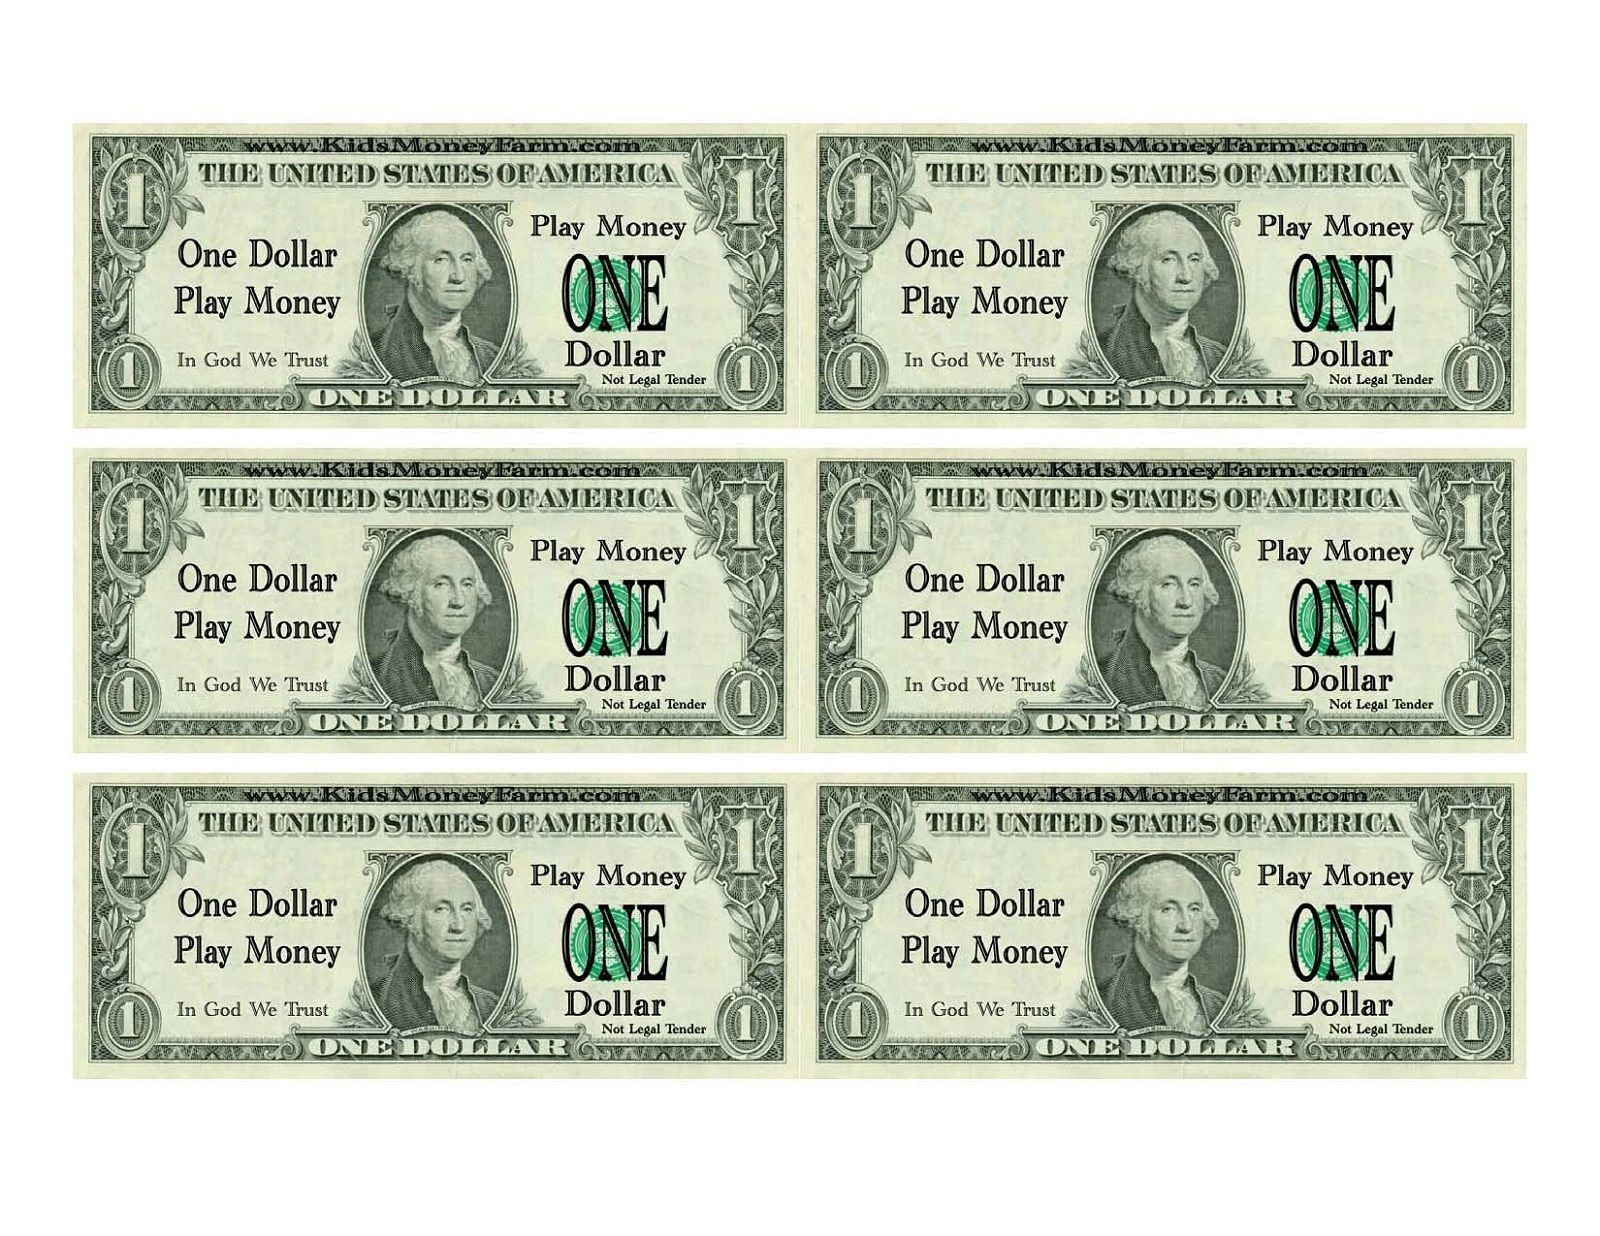 Free Money Printables For Kids To Play With. Good For Counting And - Free Printable Play Dollar Bills